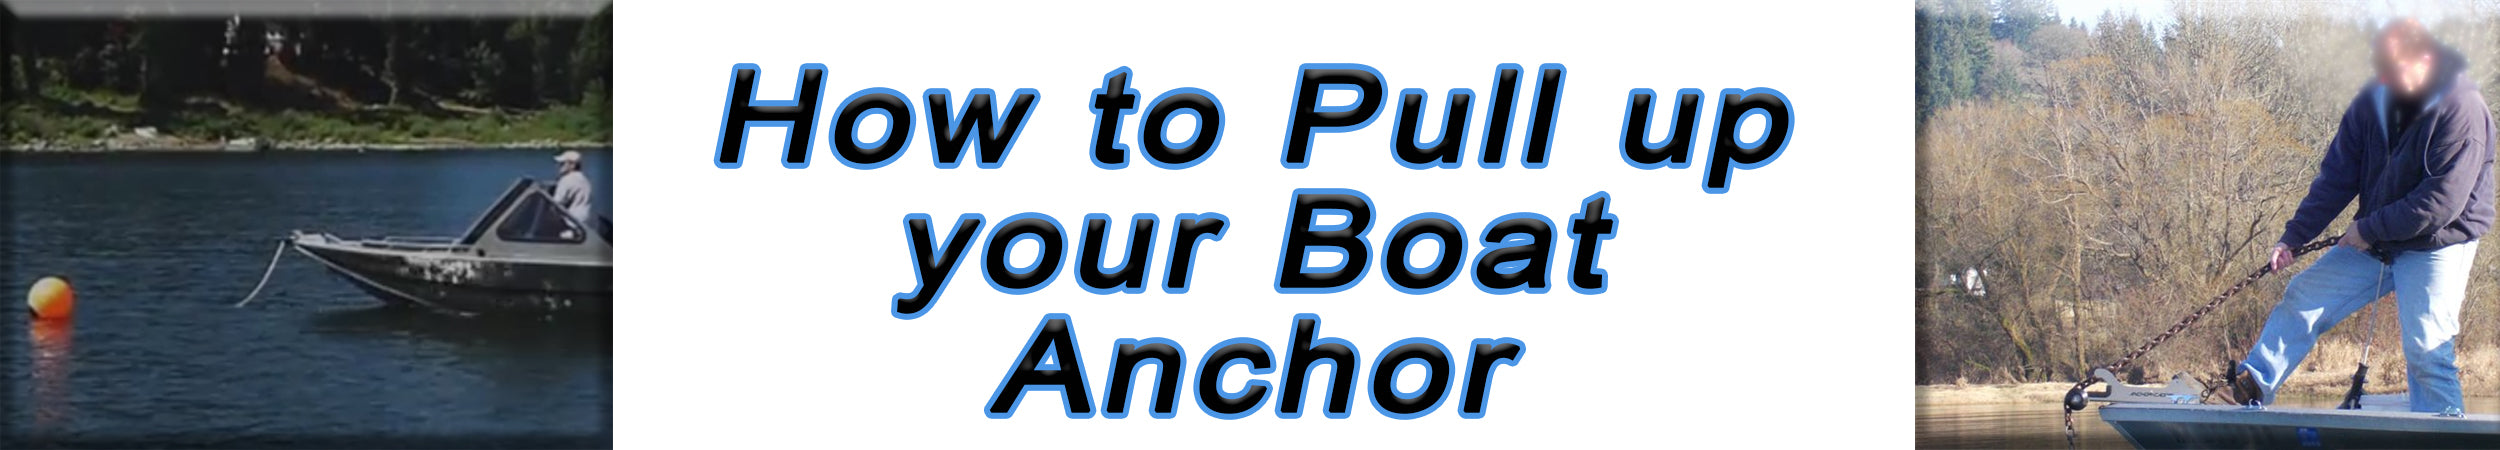 How to retrieve your boat anchor